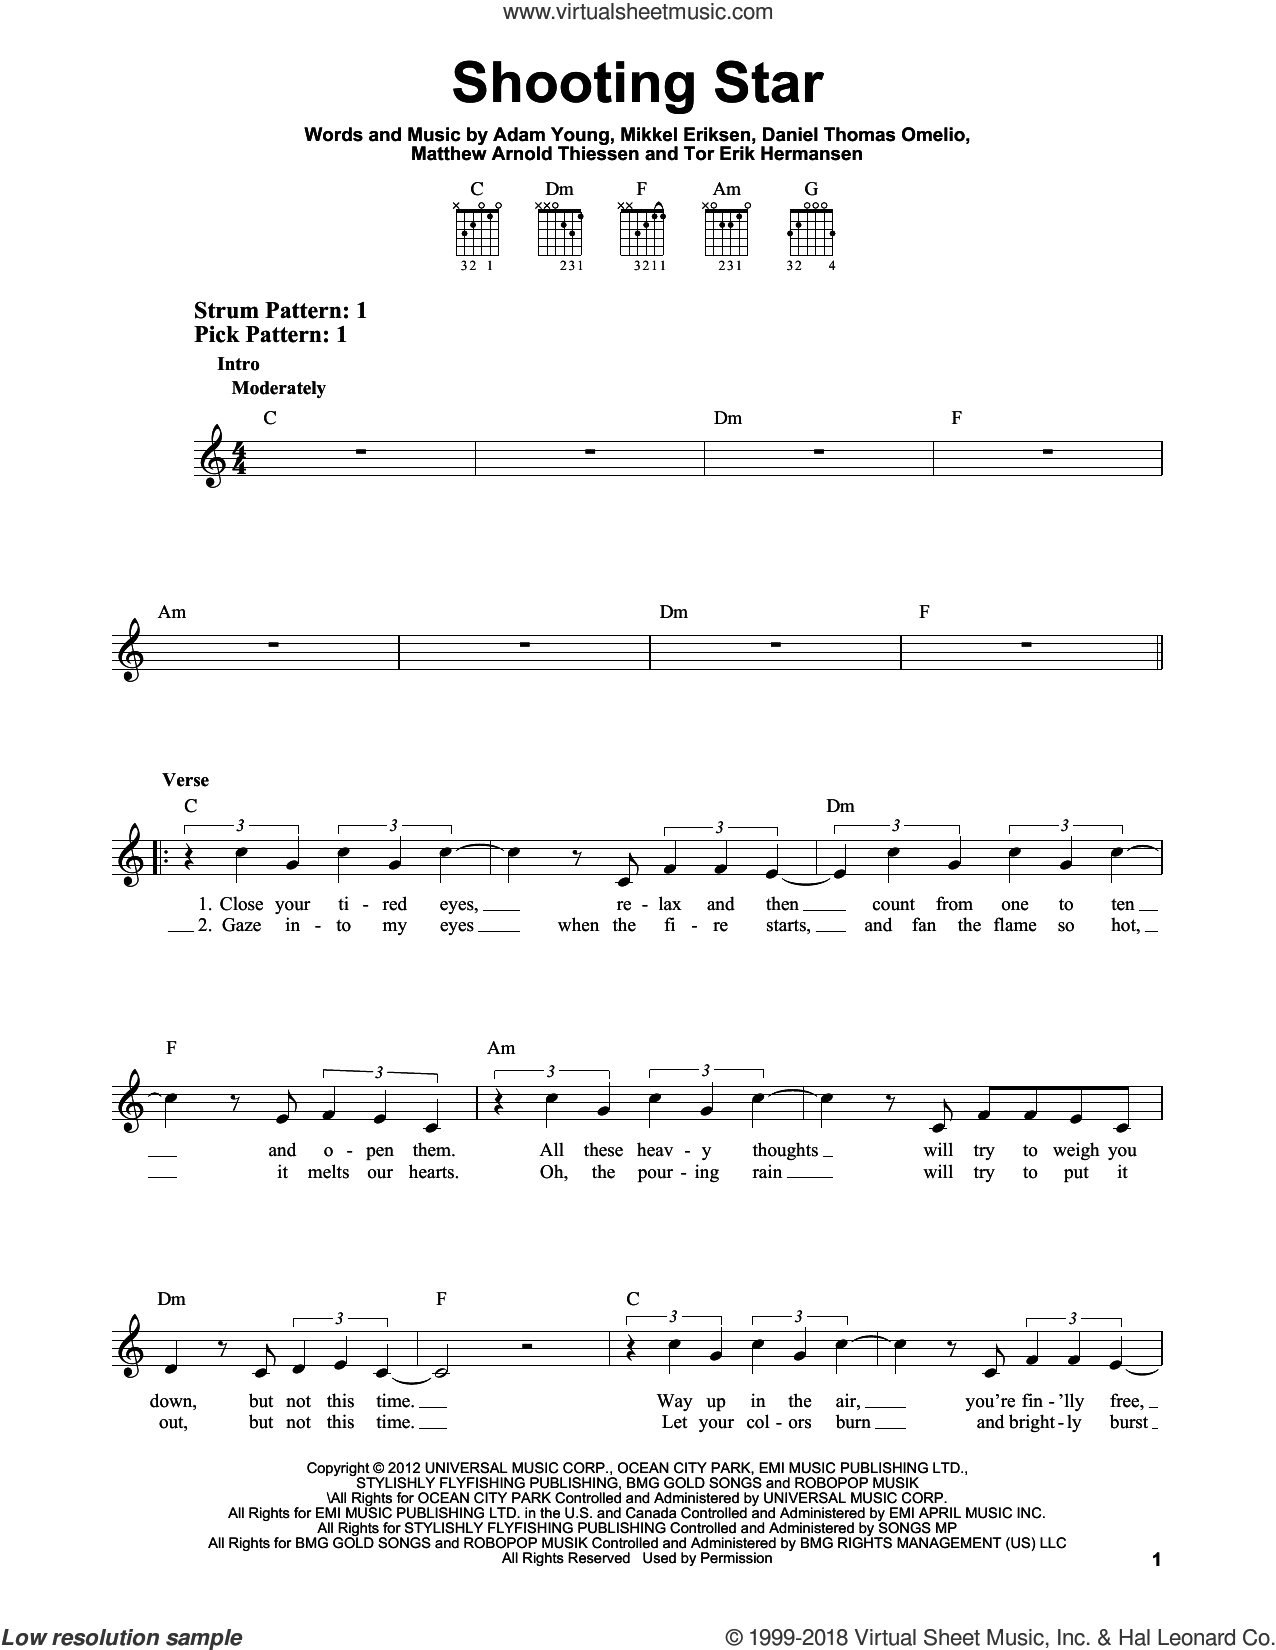 Shooting Star sheet music for guitar solo (chords) by Owl City, Adam Young, Daniel Thomas Omelio, Erik Hermansen, Matthew Arnold Thiessen and Mikkel Eriksen, easy guitar (chords)